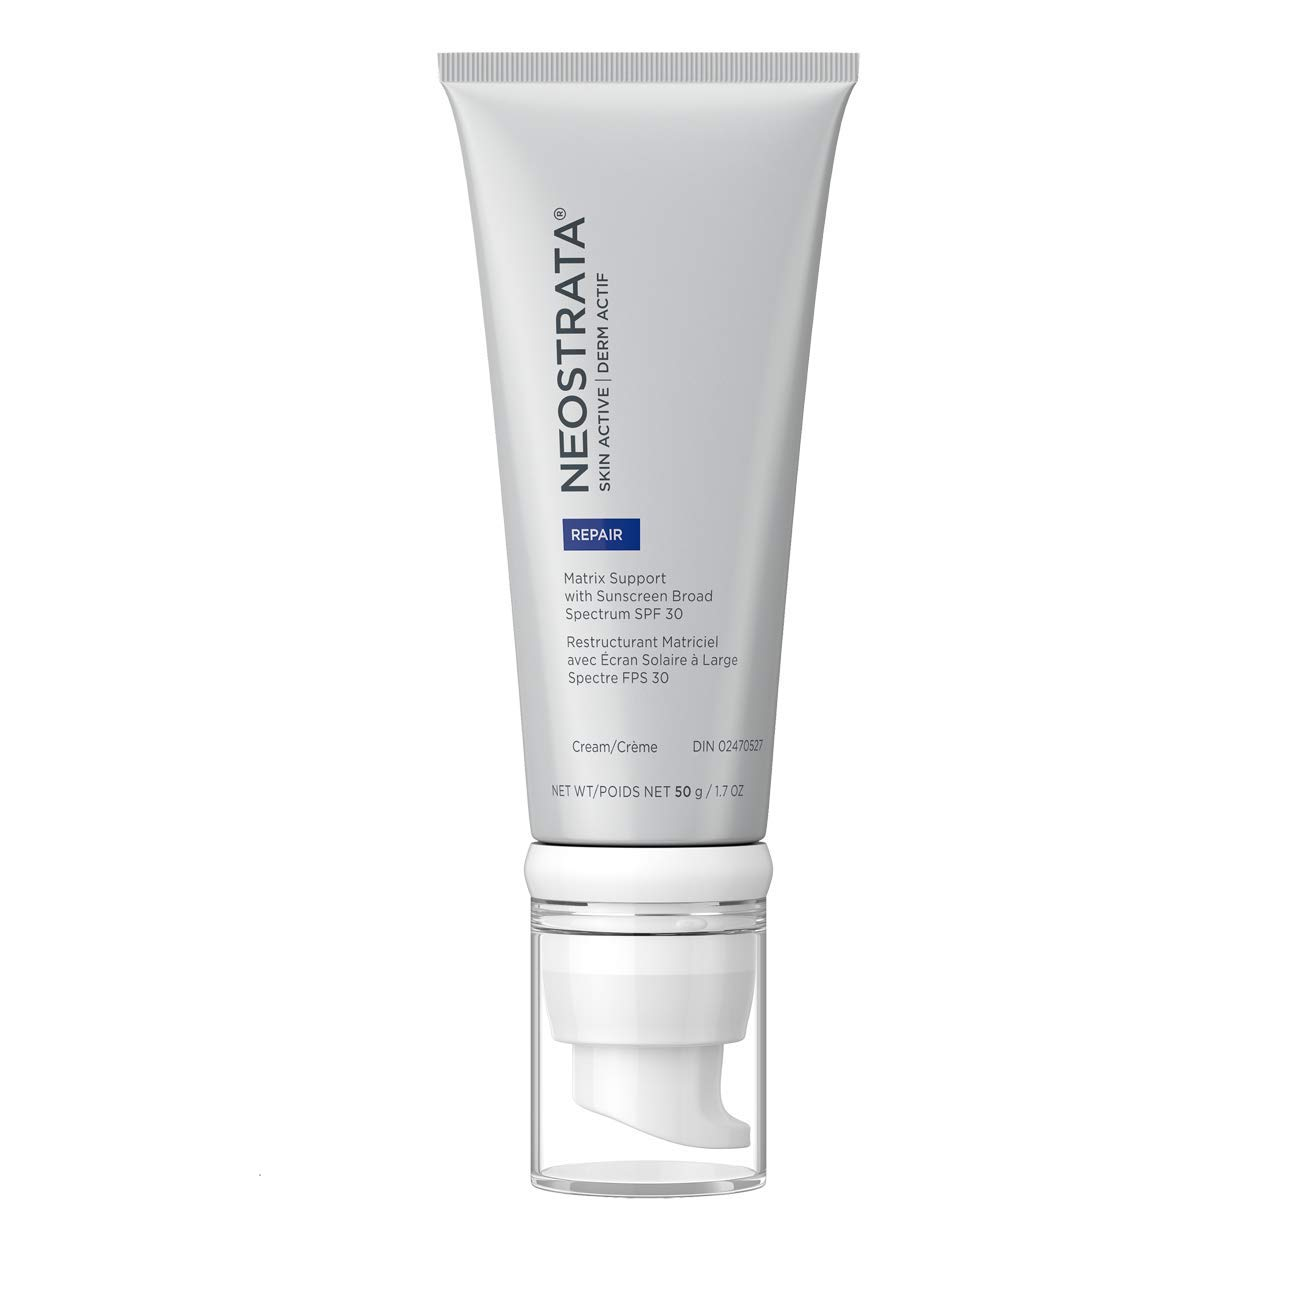 NEOSTRATA SKIN ACTIVE Repair Matrix Support with Sunscreen Broad Spectrum SPF 30, 1.7 ounce